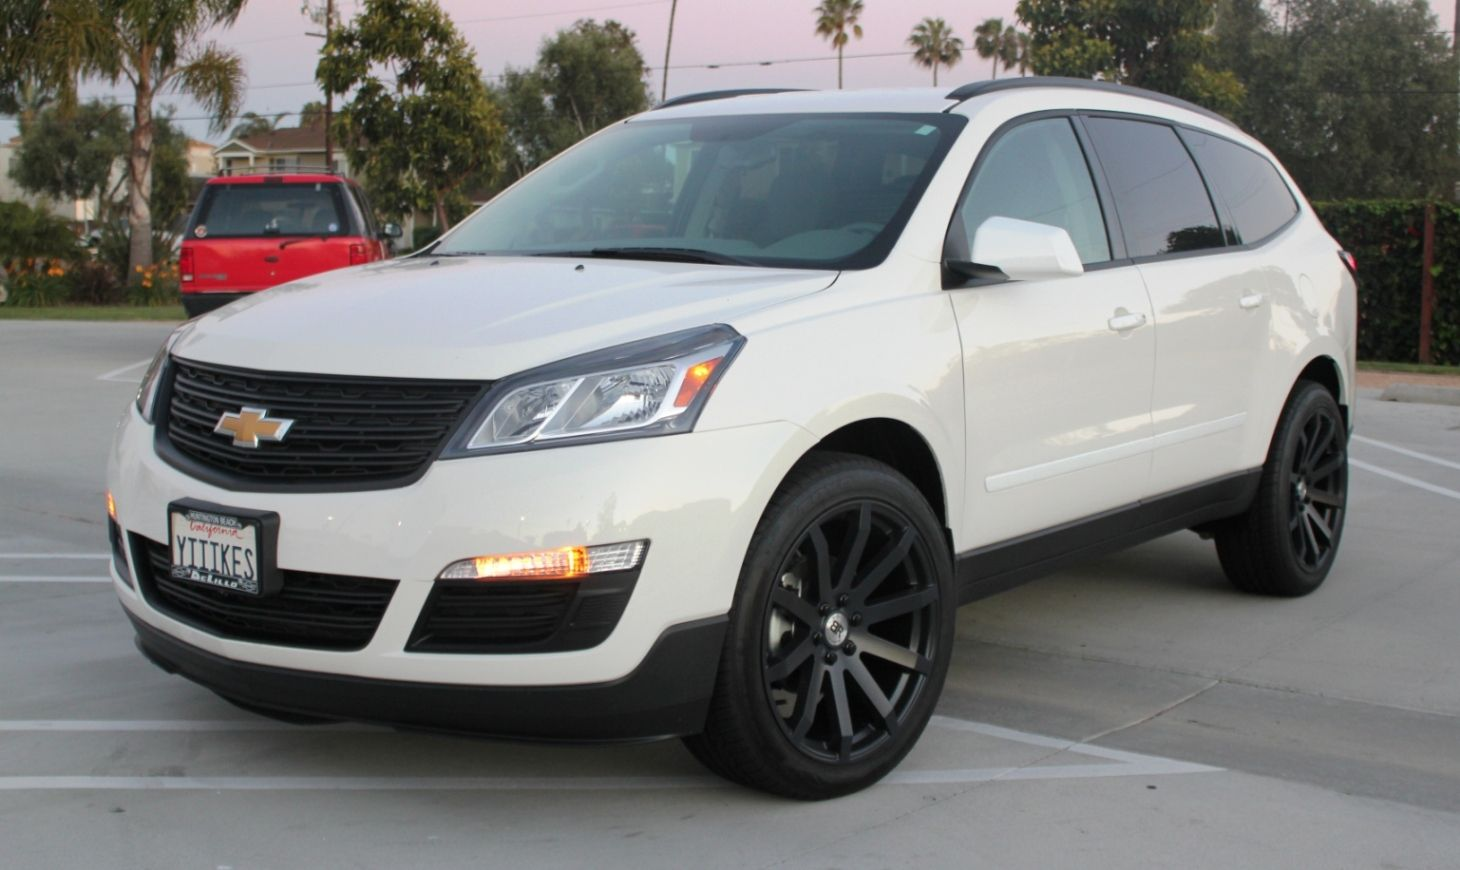 2014 chevy traverse white black rims google search vehicles pinterest 2014 chevy chevy. Black Bedroom Furniture Sets. Home Design Ideas